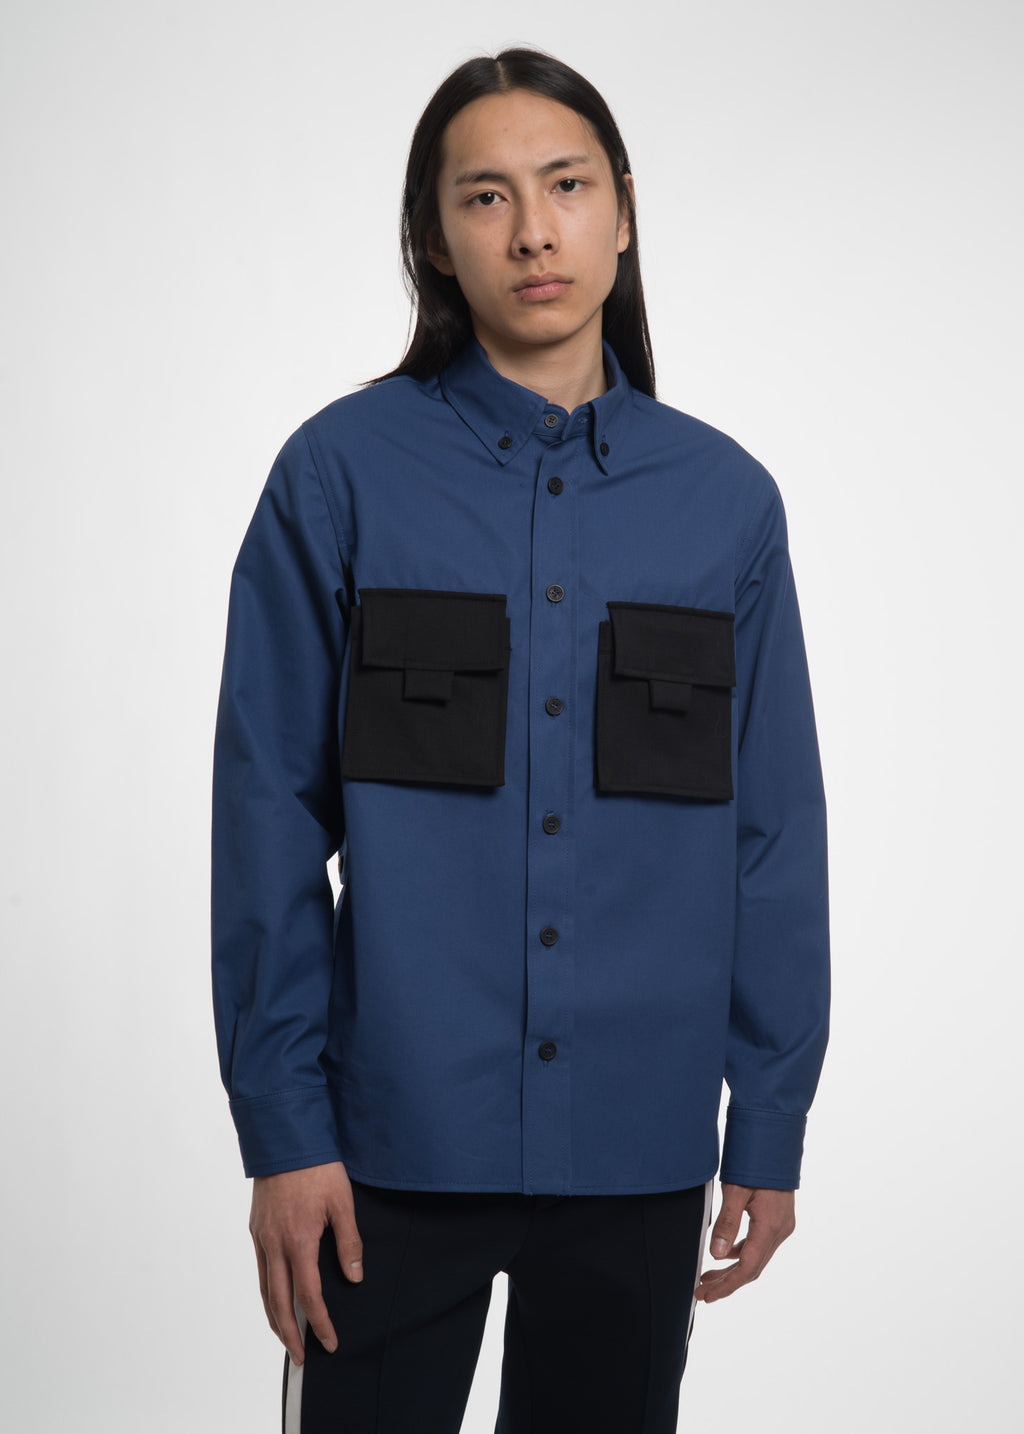 Cobalt Blue Worker Overshirt